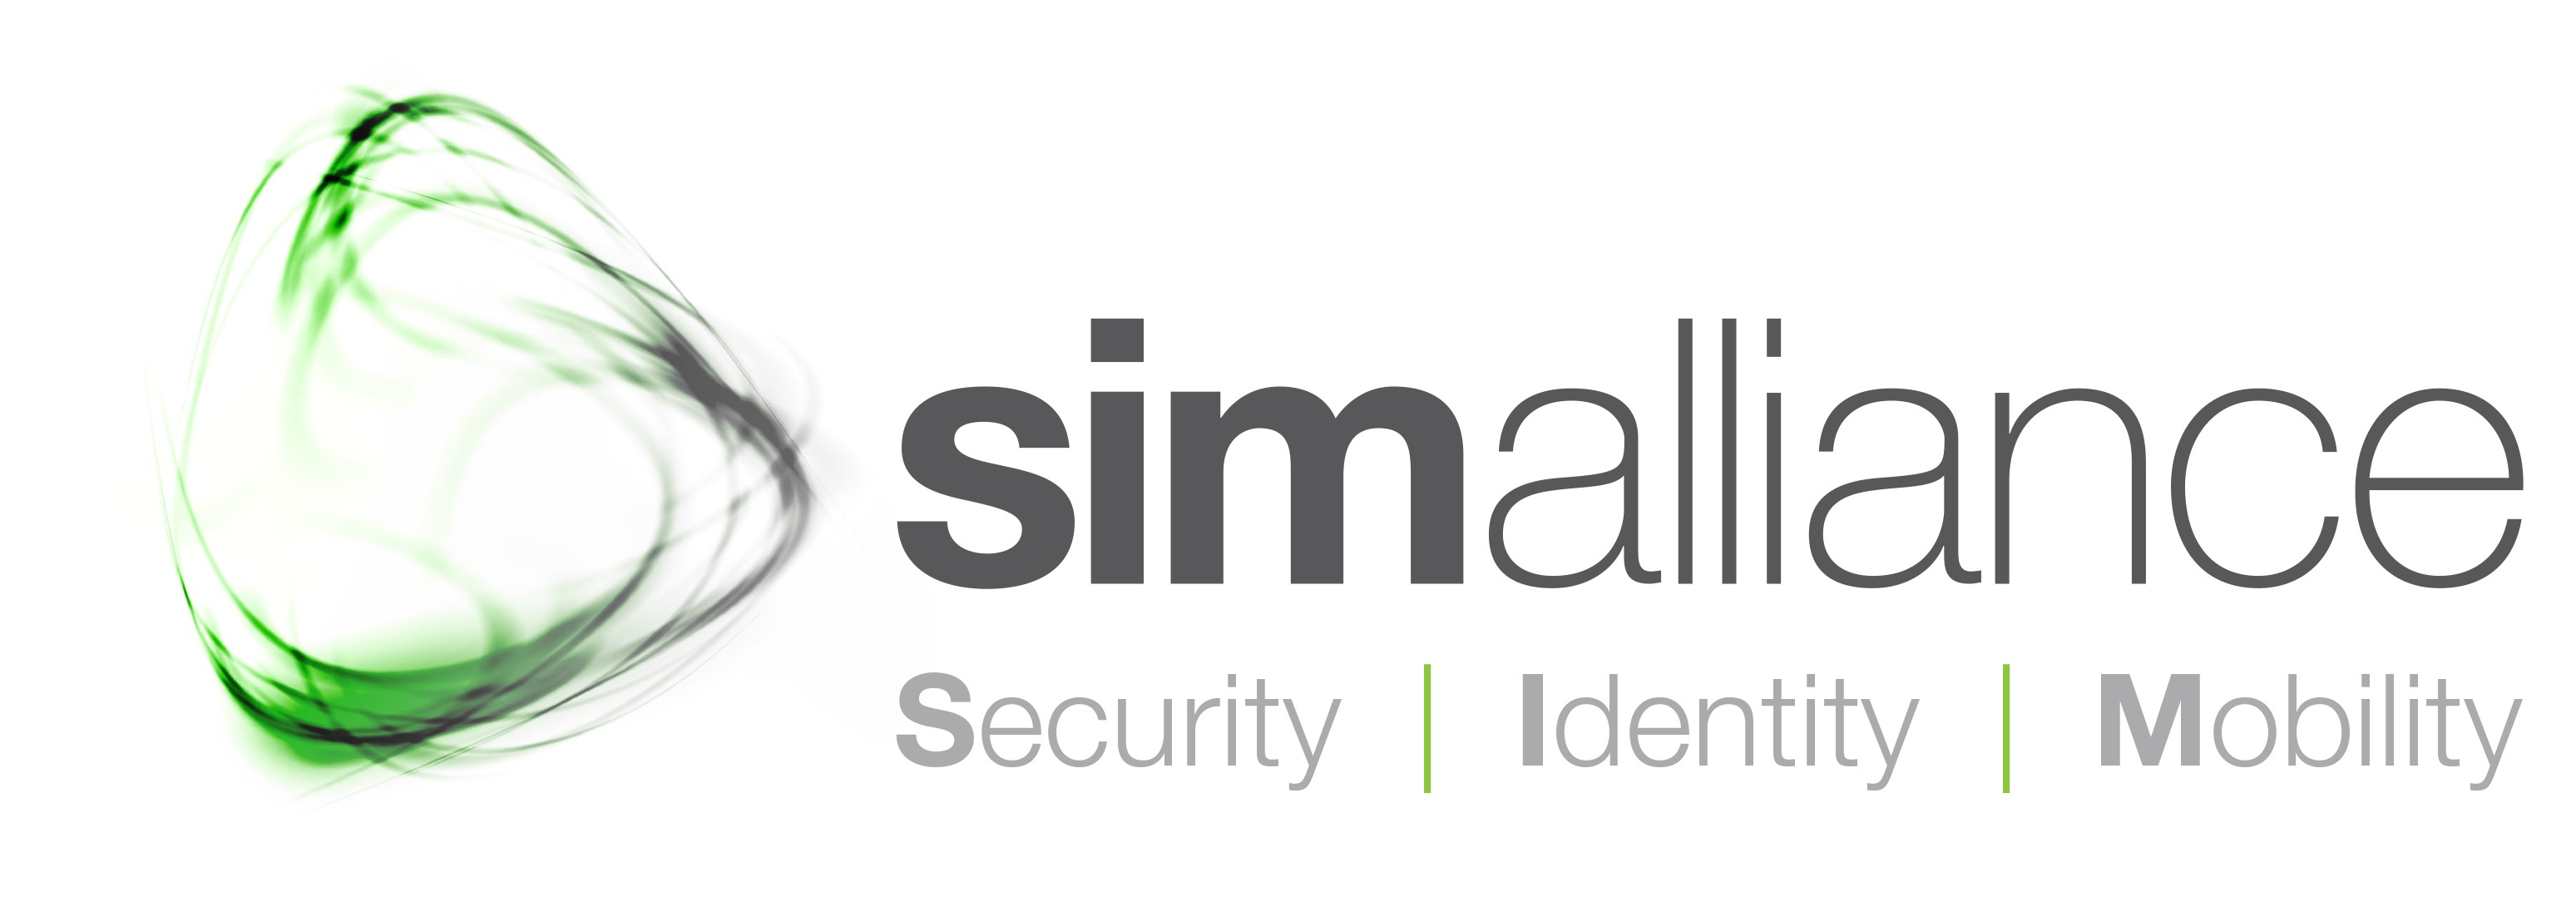 SIMalliance-logo